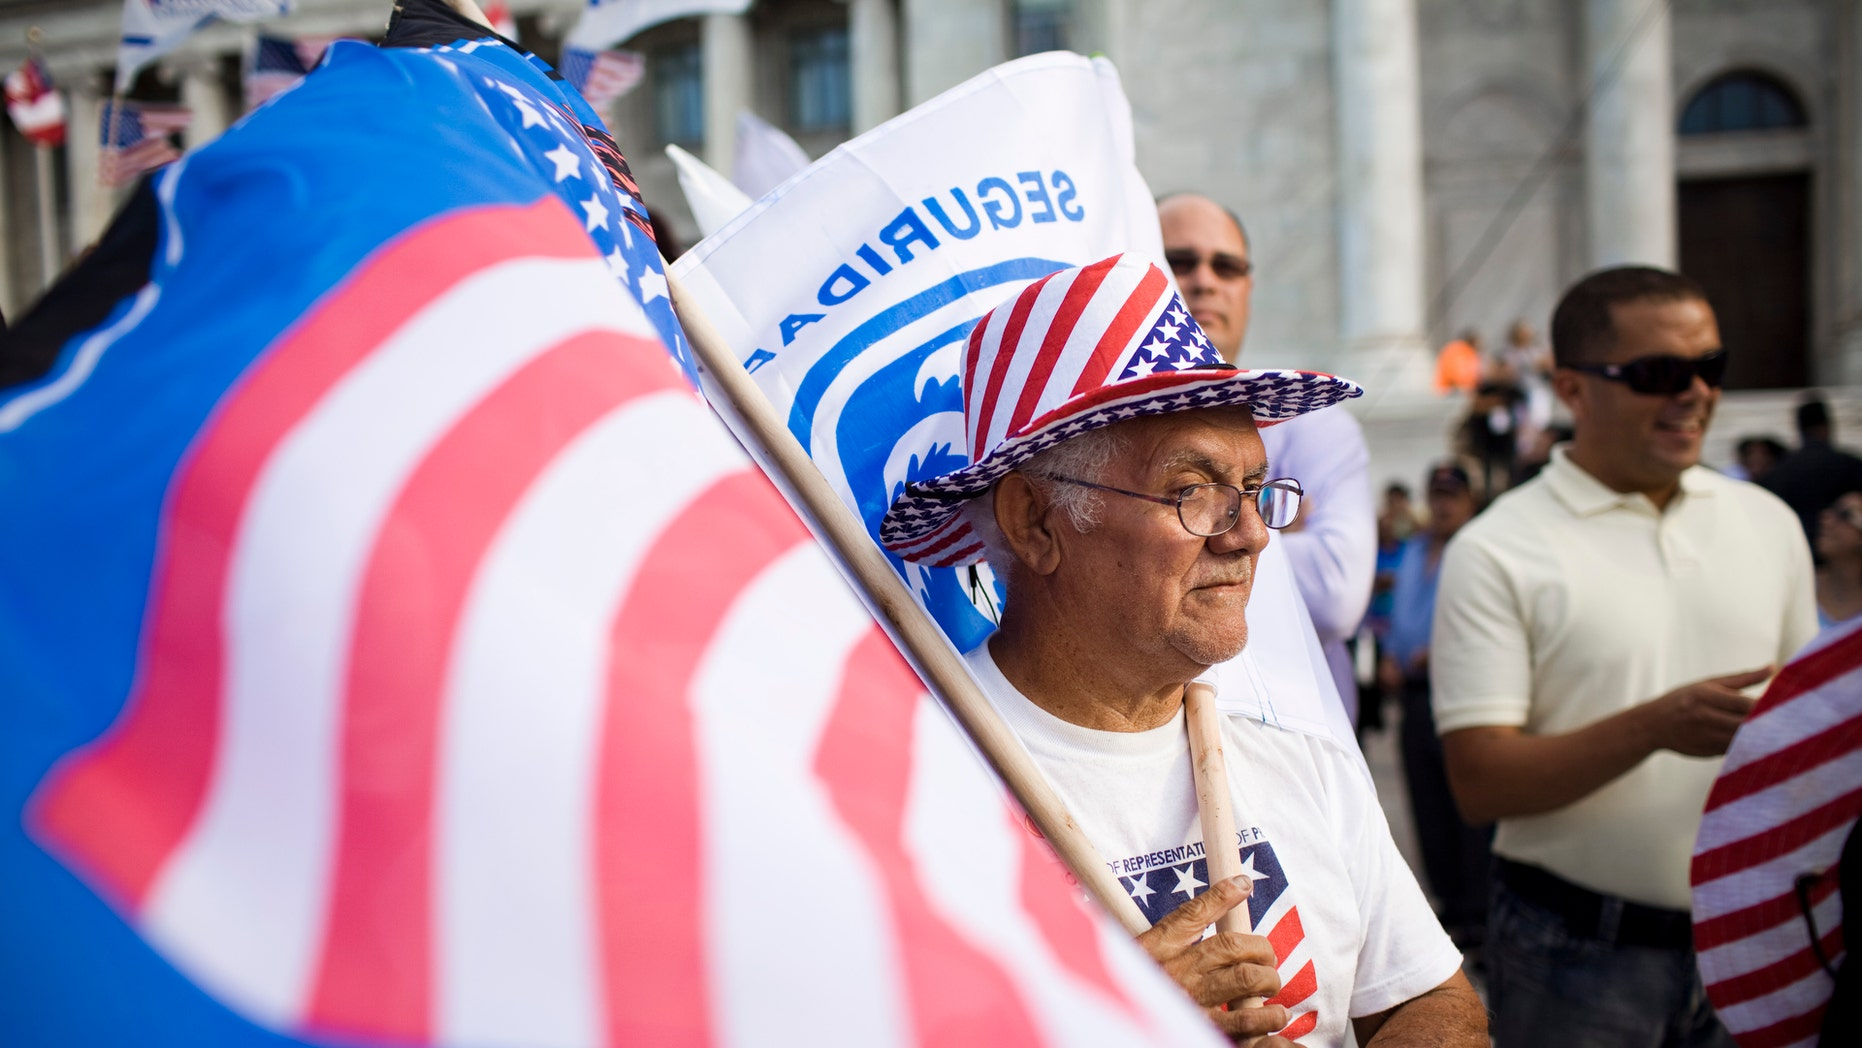 SAN JUAN, PUERTO RICO - MARCH 16:   Roberto Maldonado, 75, sells flags at a New Progressive Party rally where Republican presidential candidate, former Massachusetts Gov. Mitt Romney was campaigning on the North Side of the Capitol building March 16, 2012 in San Juan, Puerto Rico. Luis Fortuno, the island's governor and a Republican, has already expressed his support for the former governor for president. Romney's two-day campaign on the island is meant to win the 23 GOP delegates up for grabs on the U.S. territory. Romney's fiscal views are likely to resonate with the island's large private sector. (Photo by Christopher Gregory/Getty Images)